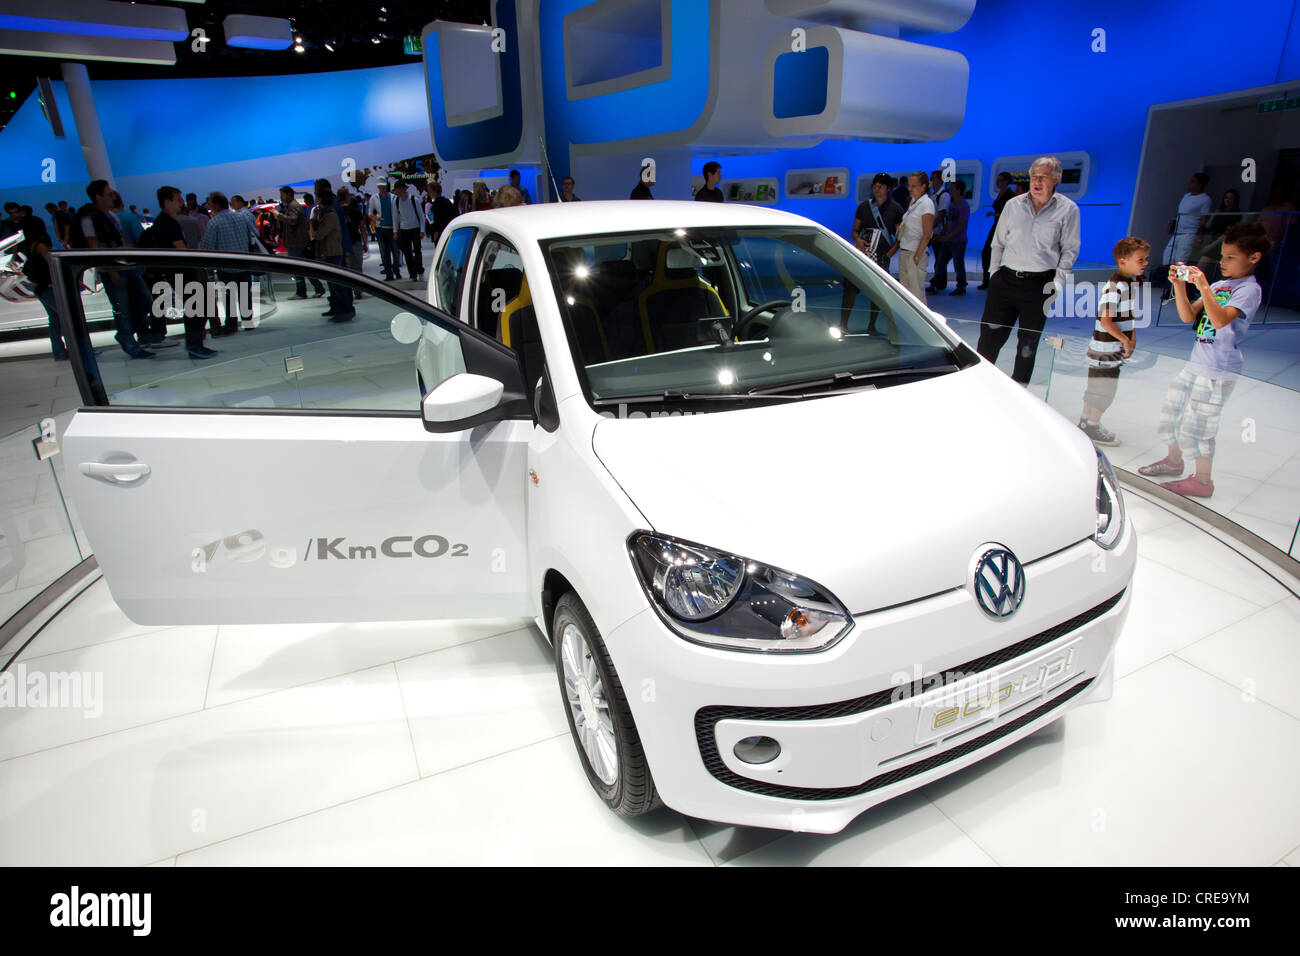 Volkswagen, VW Eco up, 64th International Motor Show, IAA, 2011, Frankfurt am Main, Hesse, Germany, Europe - Stock Image